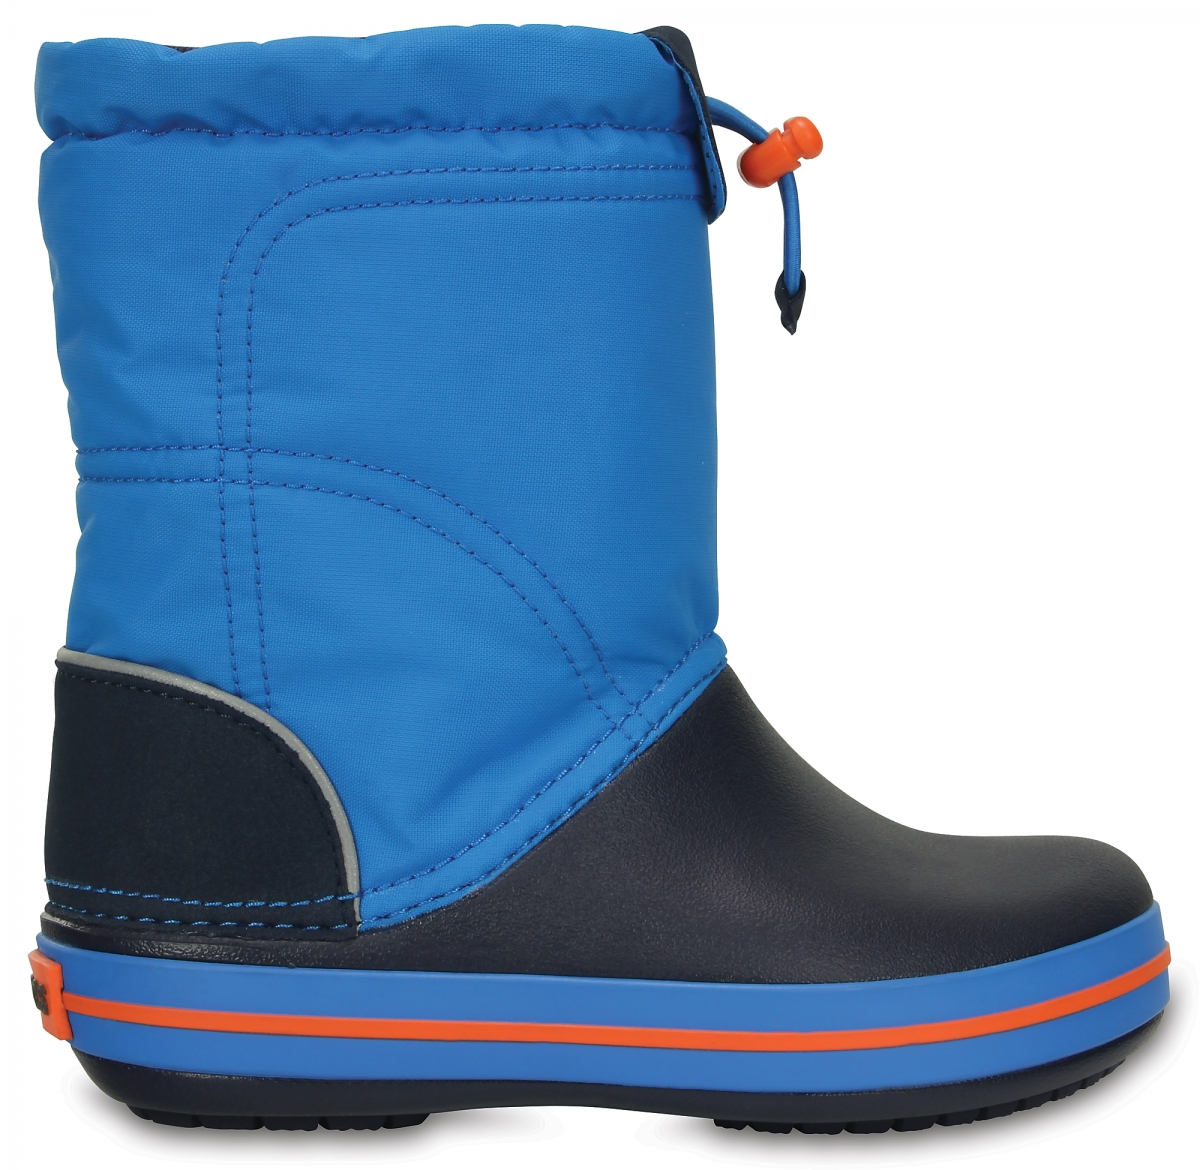 Crocs Crocband LodgePoint Boot Kids - Ocean/Navy, J3 (34-35)